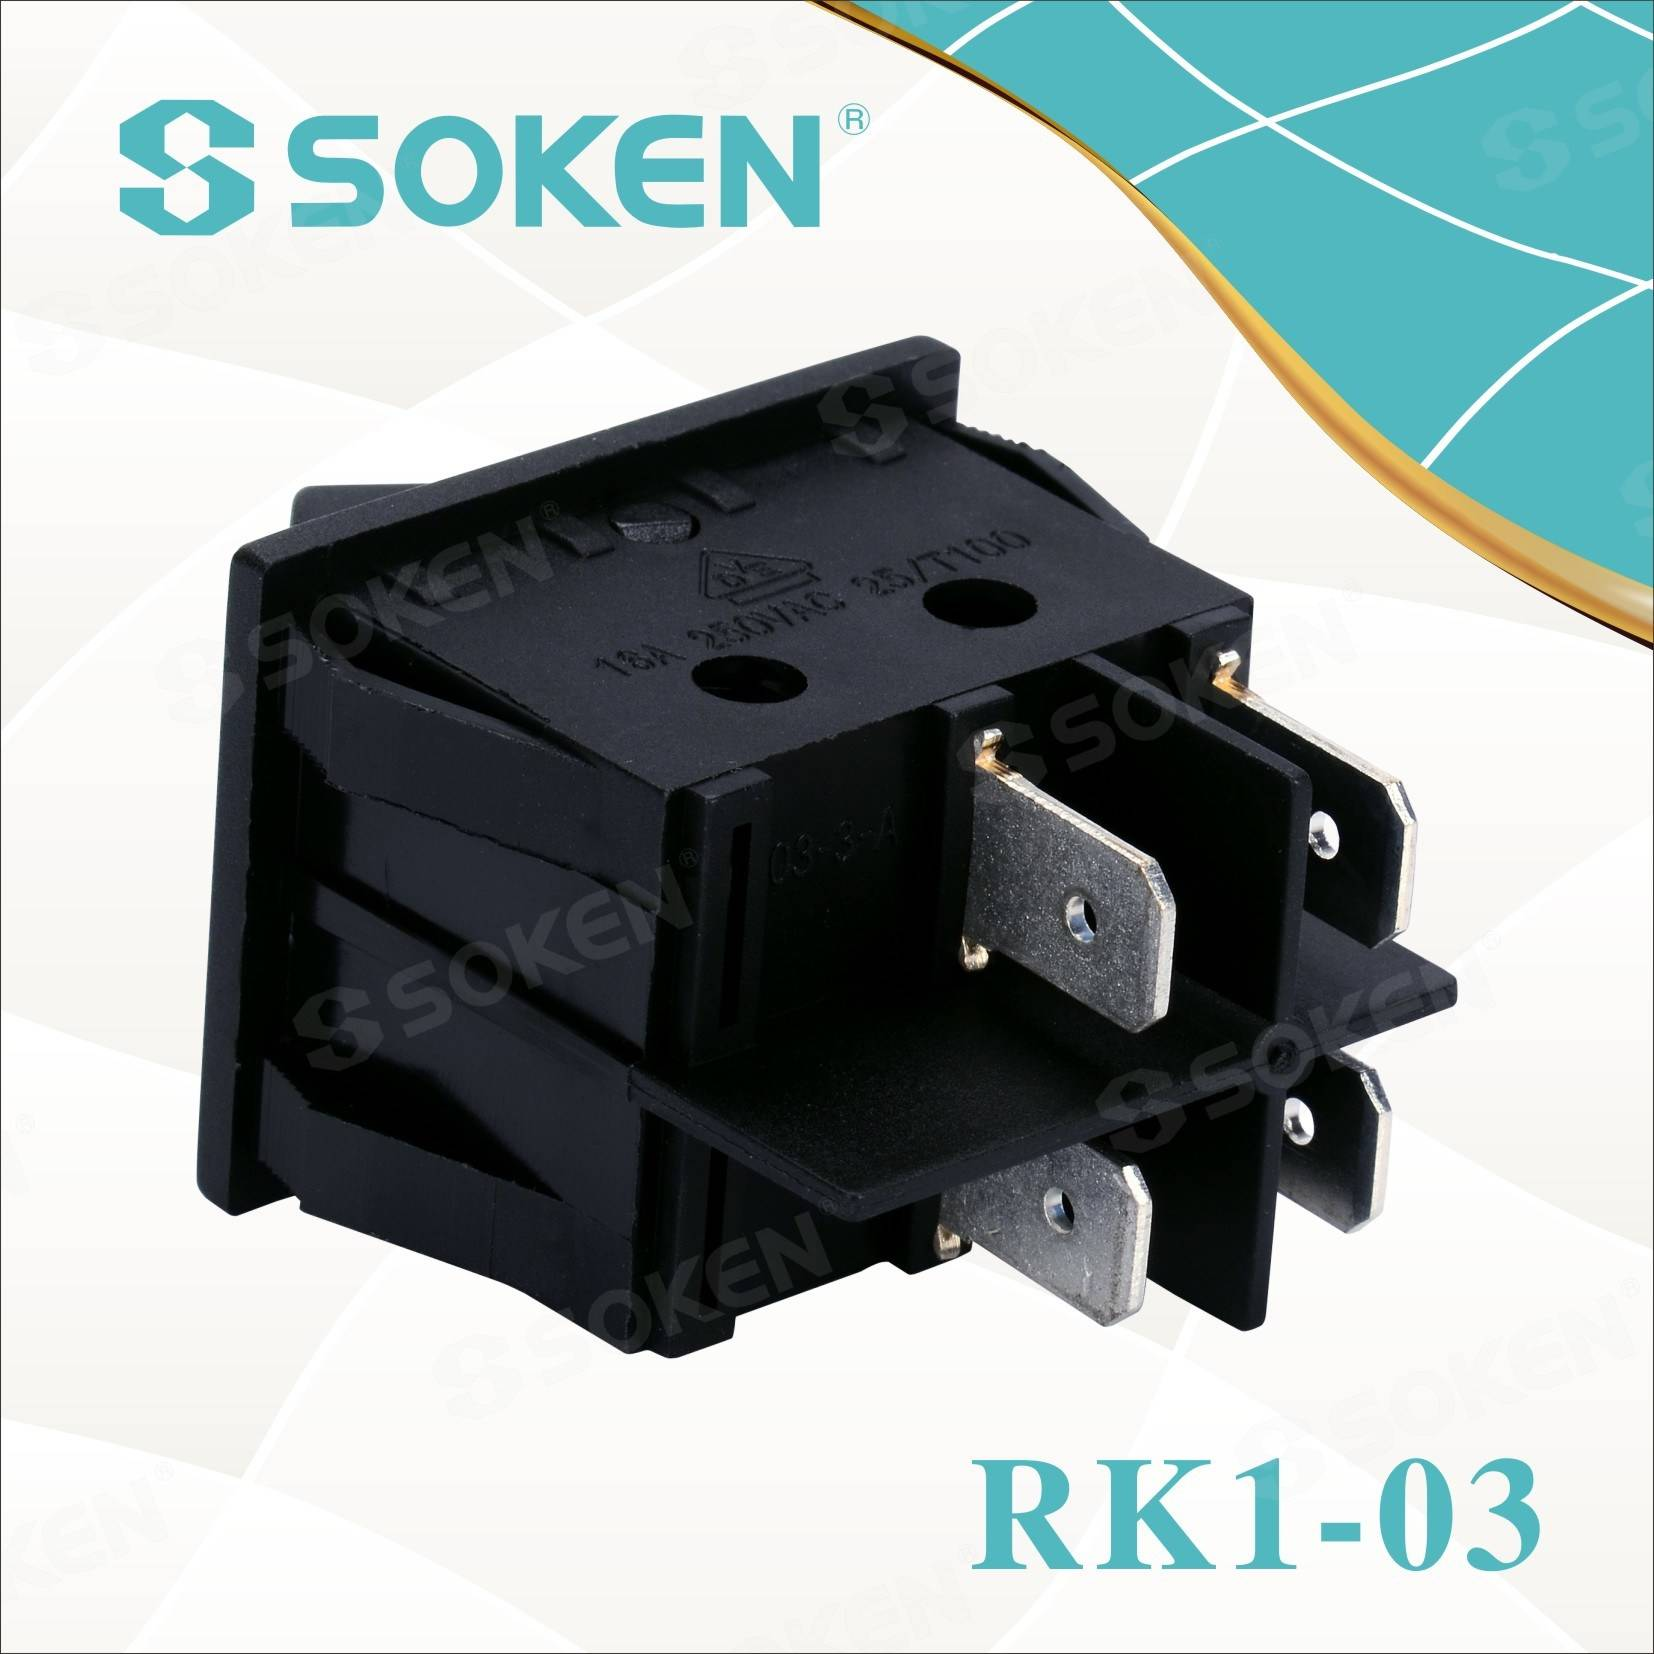 New Fashion Design for Colored Wall Switch -